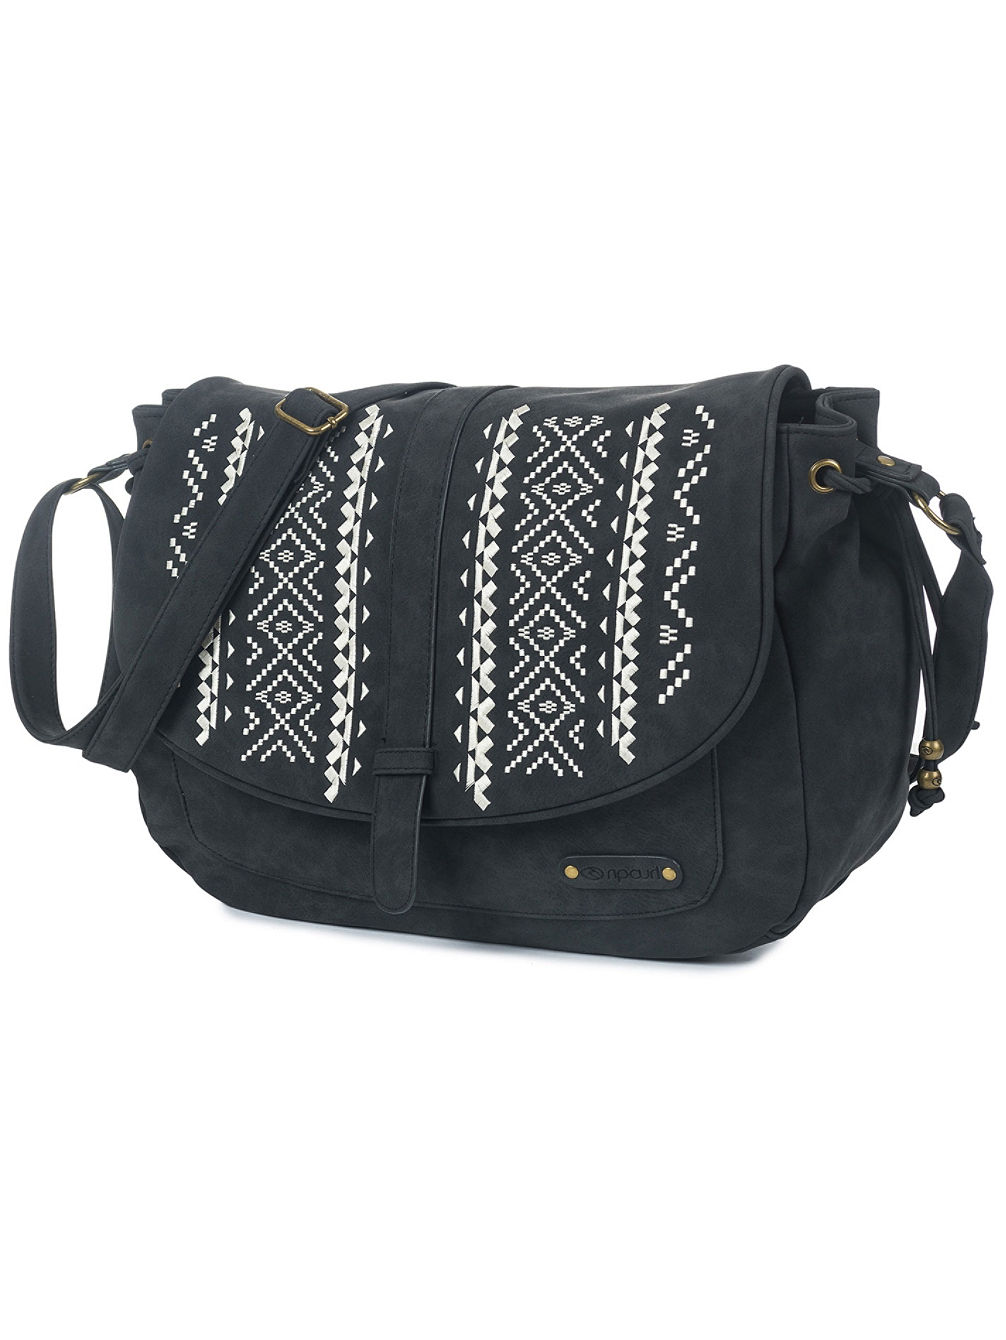 Hesperia Medium Bag